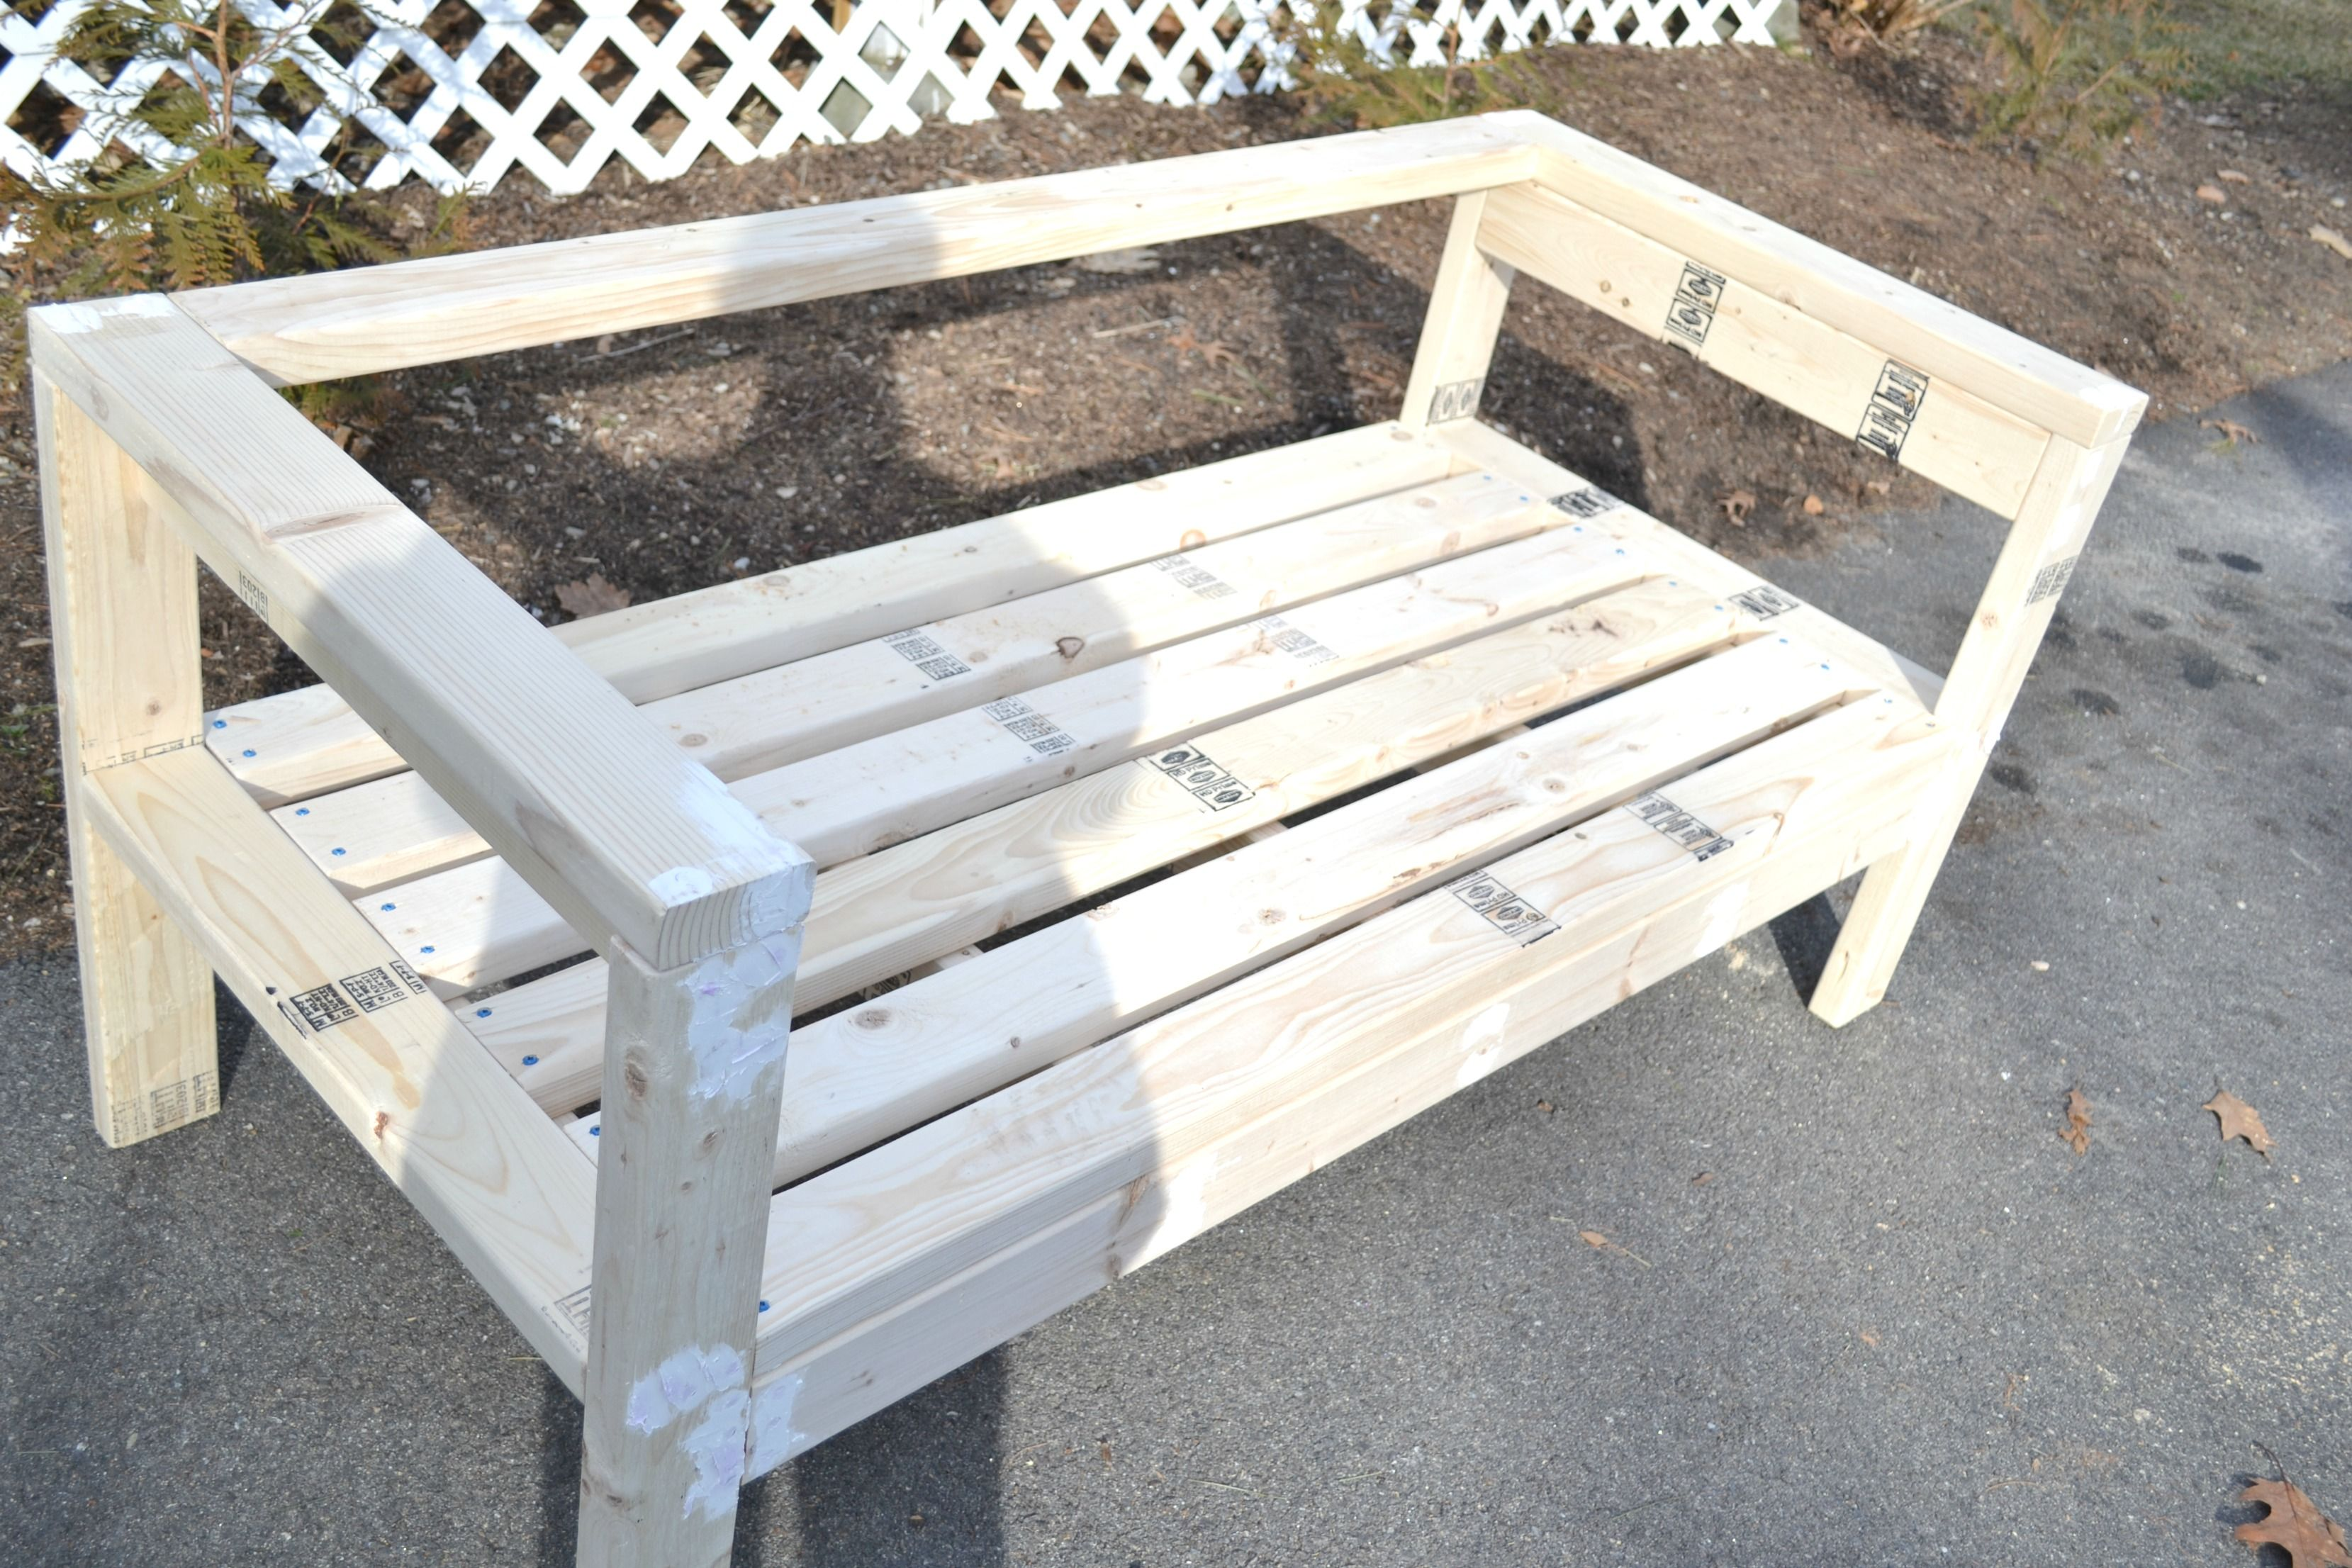 Easiest 2x4 Bench Plans Ever Backyard Ideas 2x4 Bench